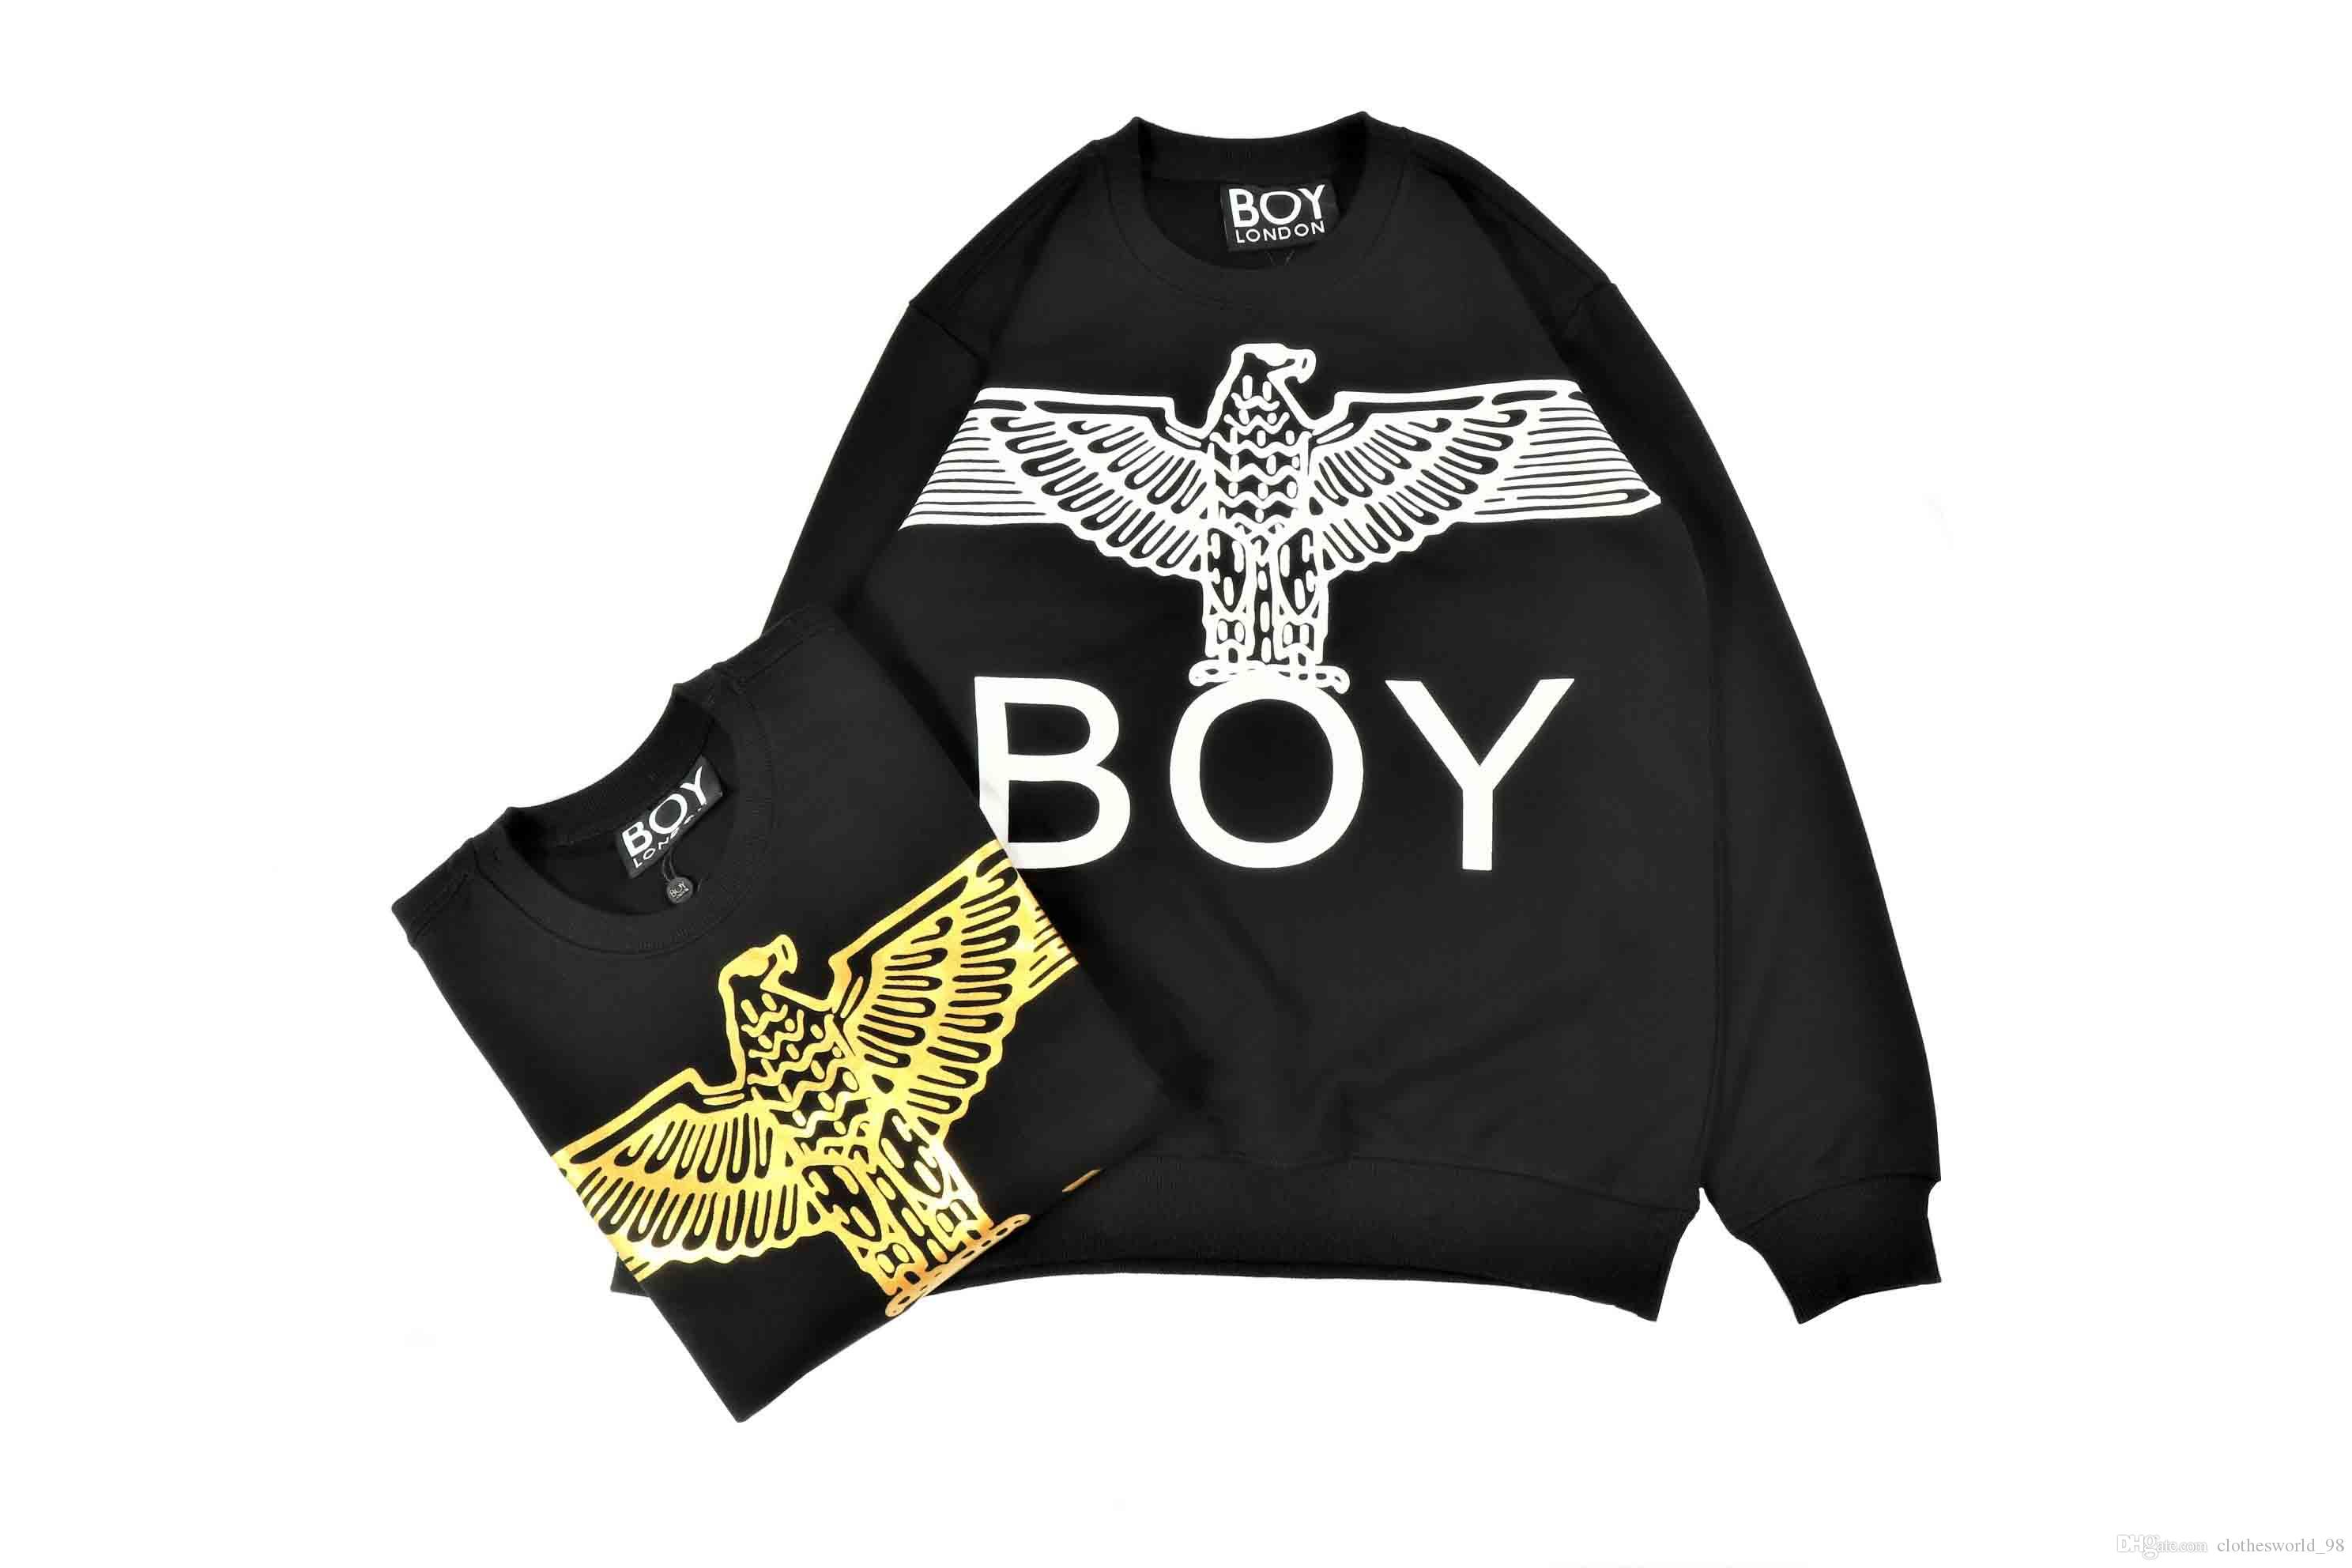 BOYS Sweatshirt Tracksuit London Fashion Brand Luxury hoodless sweaterWomen/men Top quality long hoodie Outerwears Printed Original sign